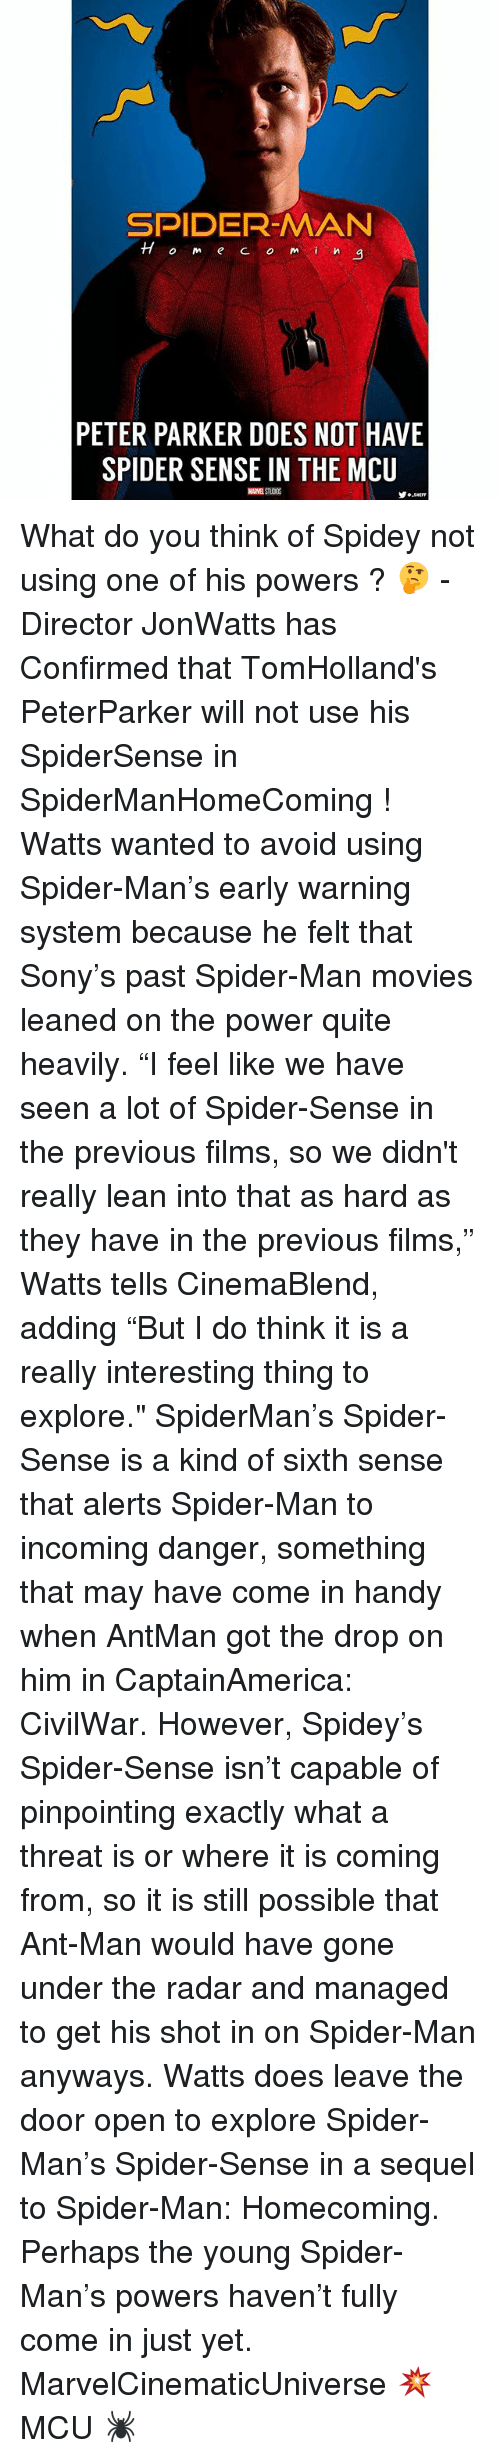 """sixth sense: SPIDER-MAN  TTom e CO mi  a  PETER PARKER DOES NOT HAVE  SPIDER SENSE IN THE MCU What do you think of Spidey not using one of his powers ? 🤔 - Director JonWatts has Confirmed that TomHolland's PeterParker will not use his SpiderSense in SpiderManHomeComing ! Watts wanted to avoid using Spider-Man's early warning system because he felt that Sony's past Spider-Man movies leaned on the power quite heavily. """"I feel like we have seen a lot of Spider-Sense in the previous films, so we didn't really lean into that as hard as they have in the previous films,"""" Watts tells CinemaBlend, adding """"But I do think it is a really interesting thing to explore."""" SpiderMan's Spider-Sense is a kind of sixth sense that alerts Spider-Man to incoming danger, something that may have come in handy when AntMan got the drop on him in CaptainAmerica: CivilWar. However, Spidey's Spider-Sense isn't capable of pinpointing exactly what a threat is or where it is coming from, so it is still possible that Ant-Man would have gone under the radar and managed to get his shot in on Spider-Man anyways. Watts does leave the door open to explore Spider-Man's Spider-Sense in a sequel to Spider-Man: Homecoming. Perhaps the young Spider-Man's powers haven't fully come in just yet. MarvelCinematicUniverse 💥 MCU 🕷"""